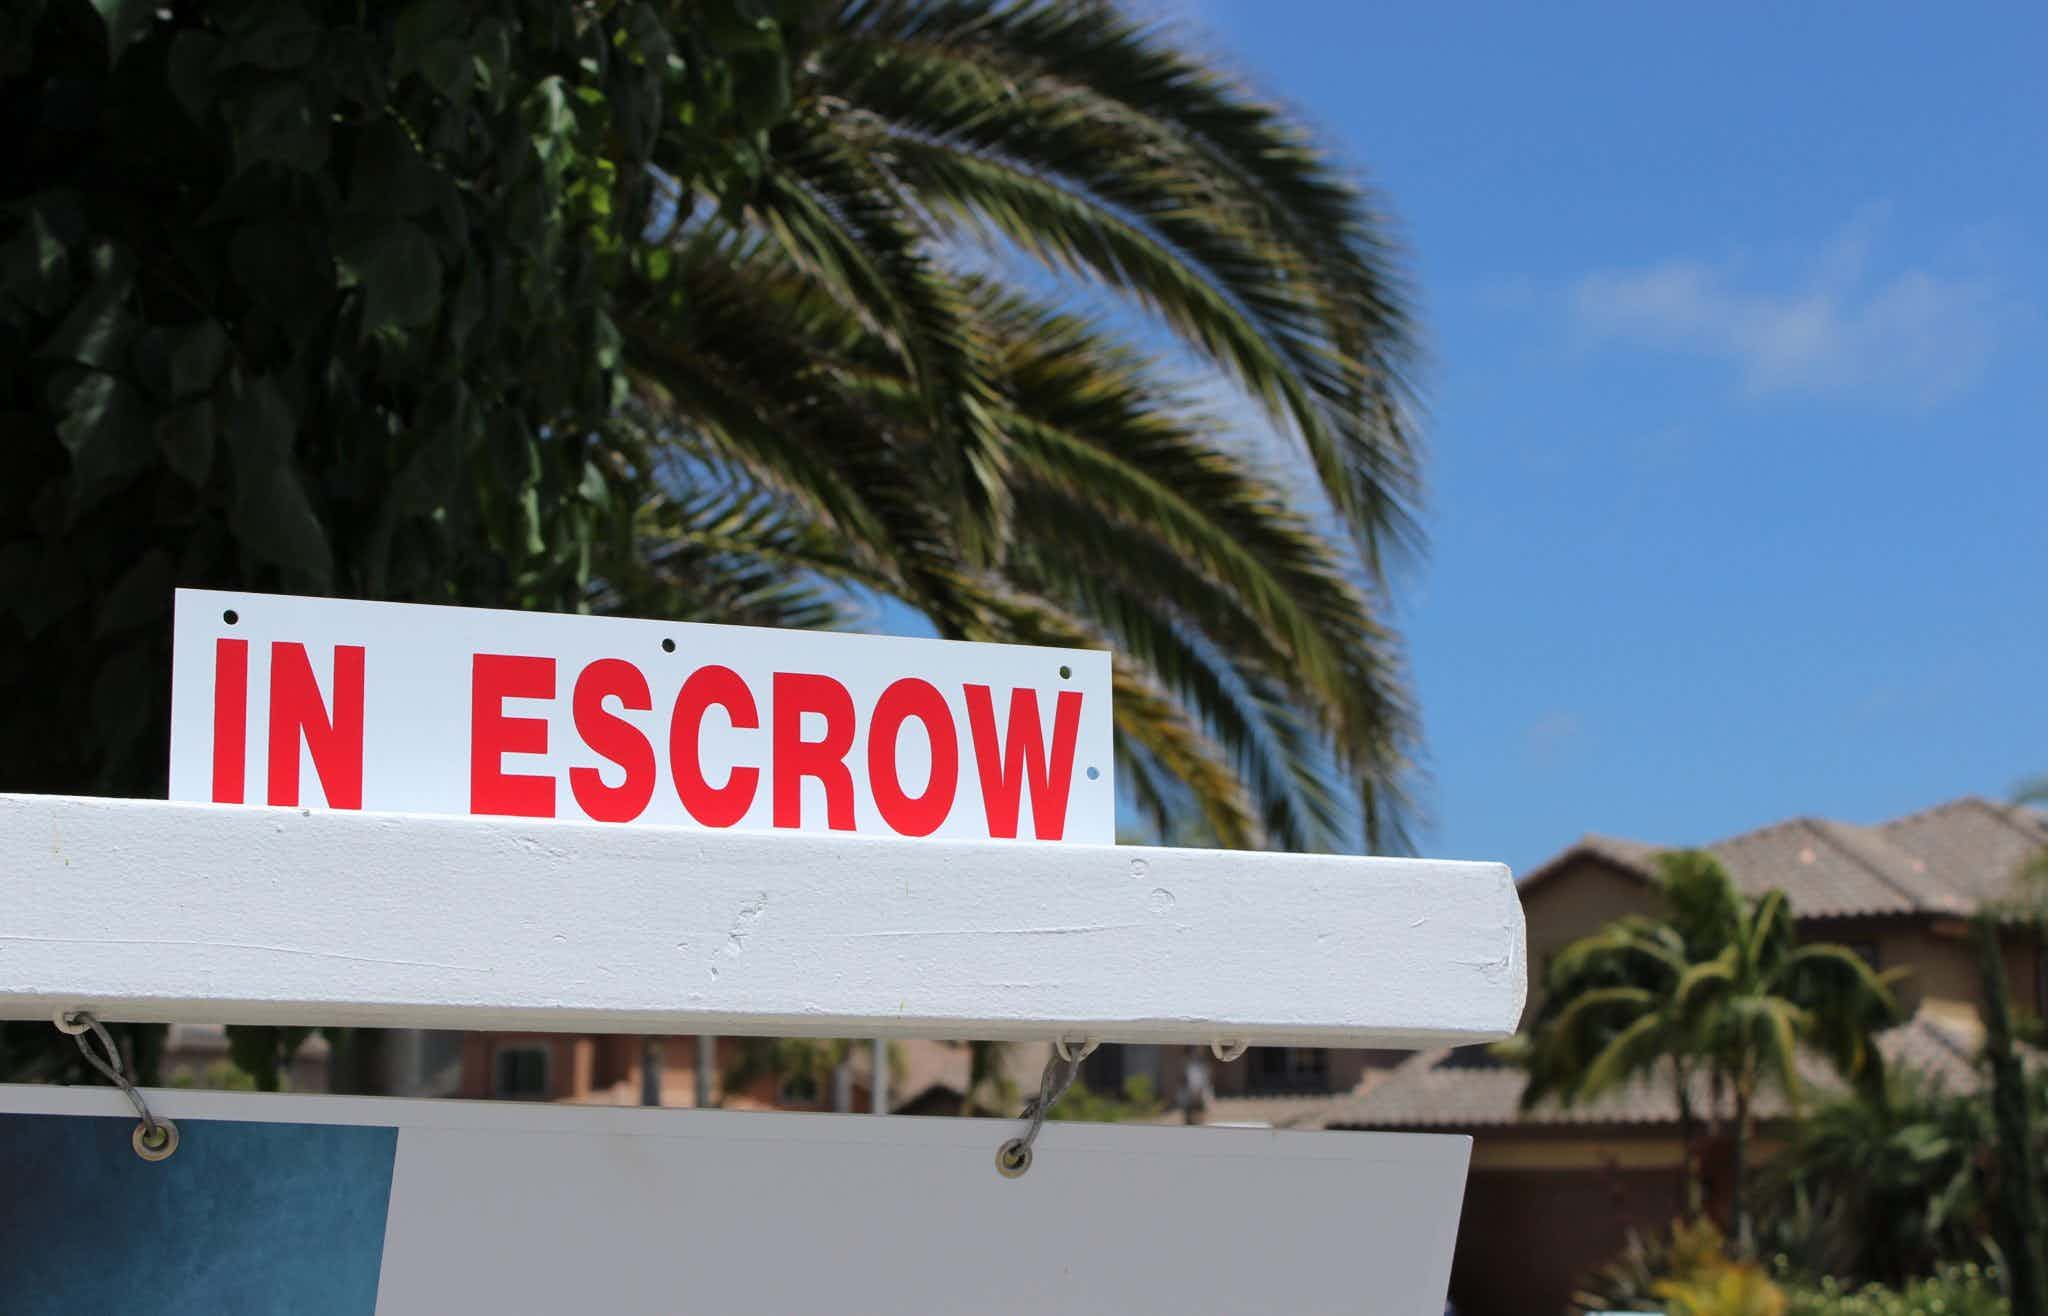 In escrow sign in front of house.